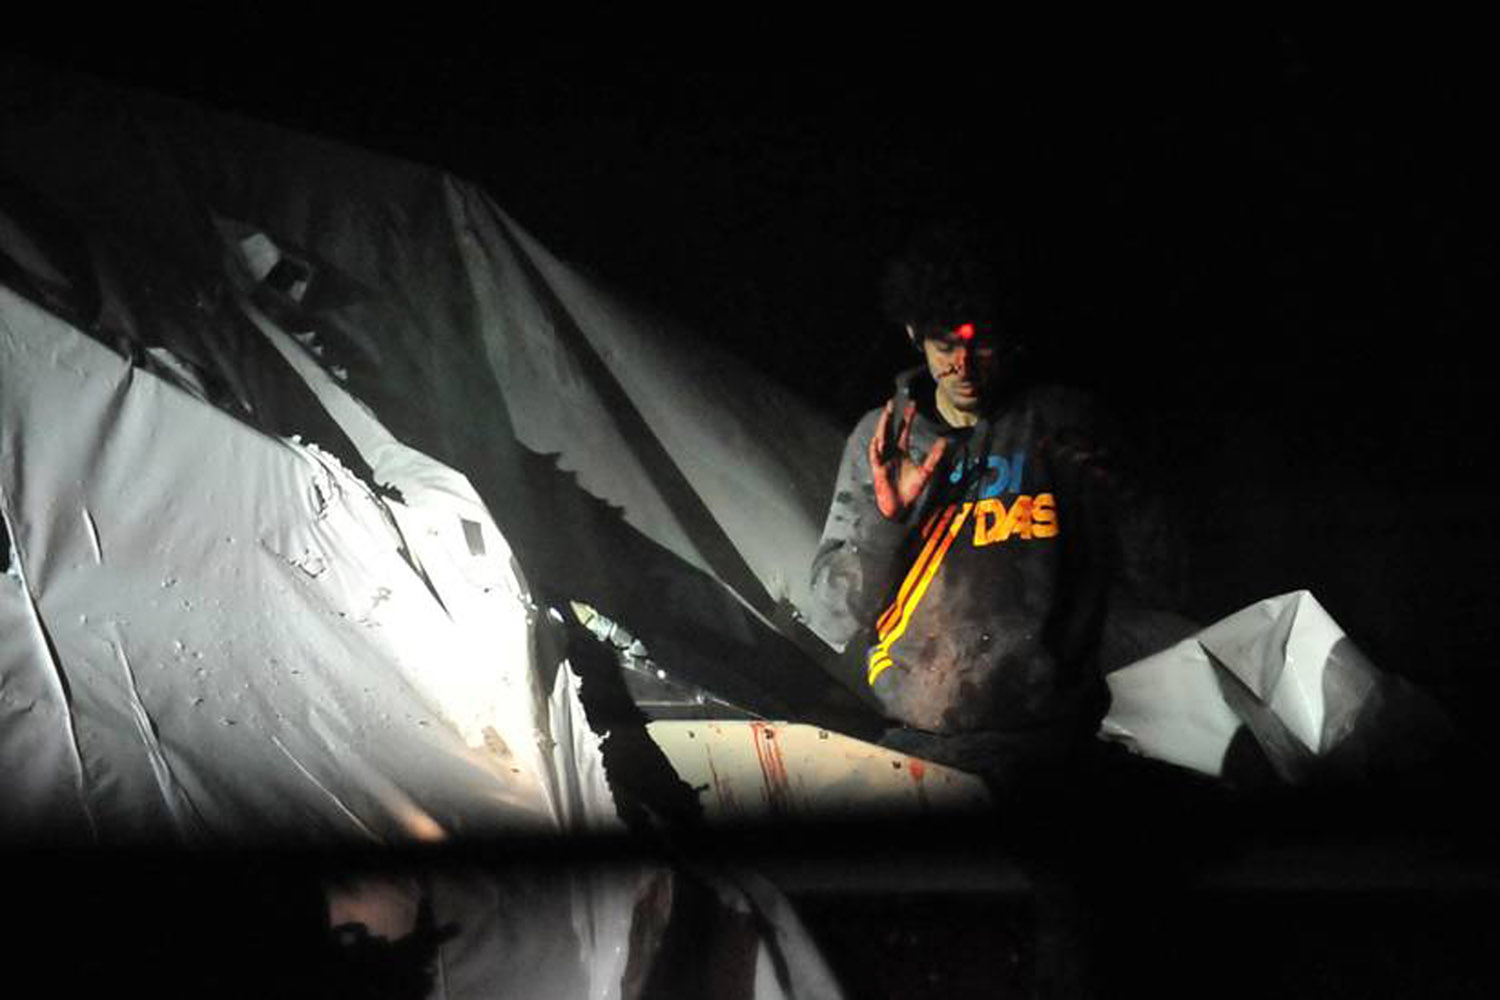 April 19, 2013. Accused  Boston Bomber  Dzhokhar Tsarnaev is shown before his arrest with a sniper's laser sight trained on his head as he surrenders to authorities after a massive manhunt.